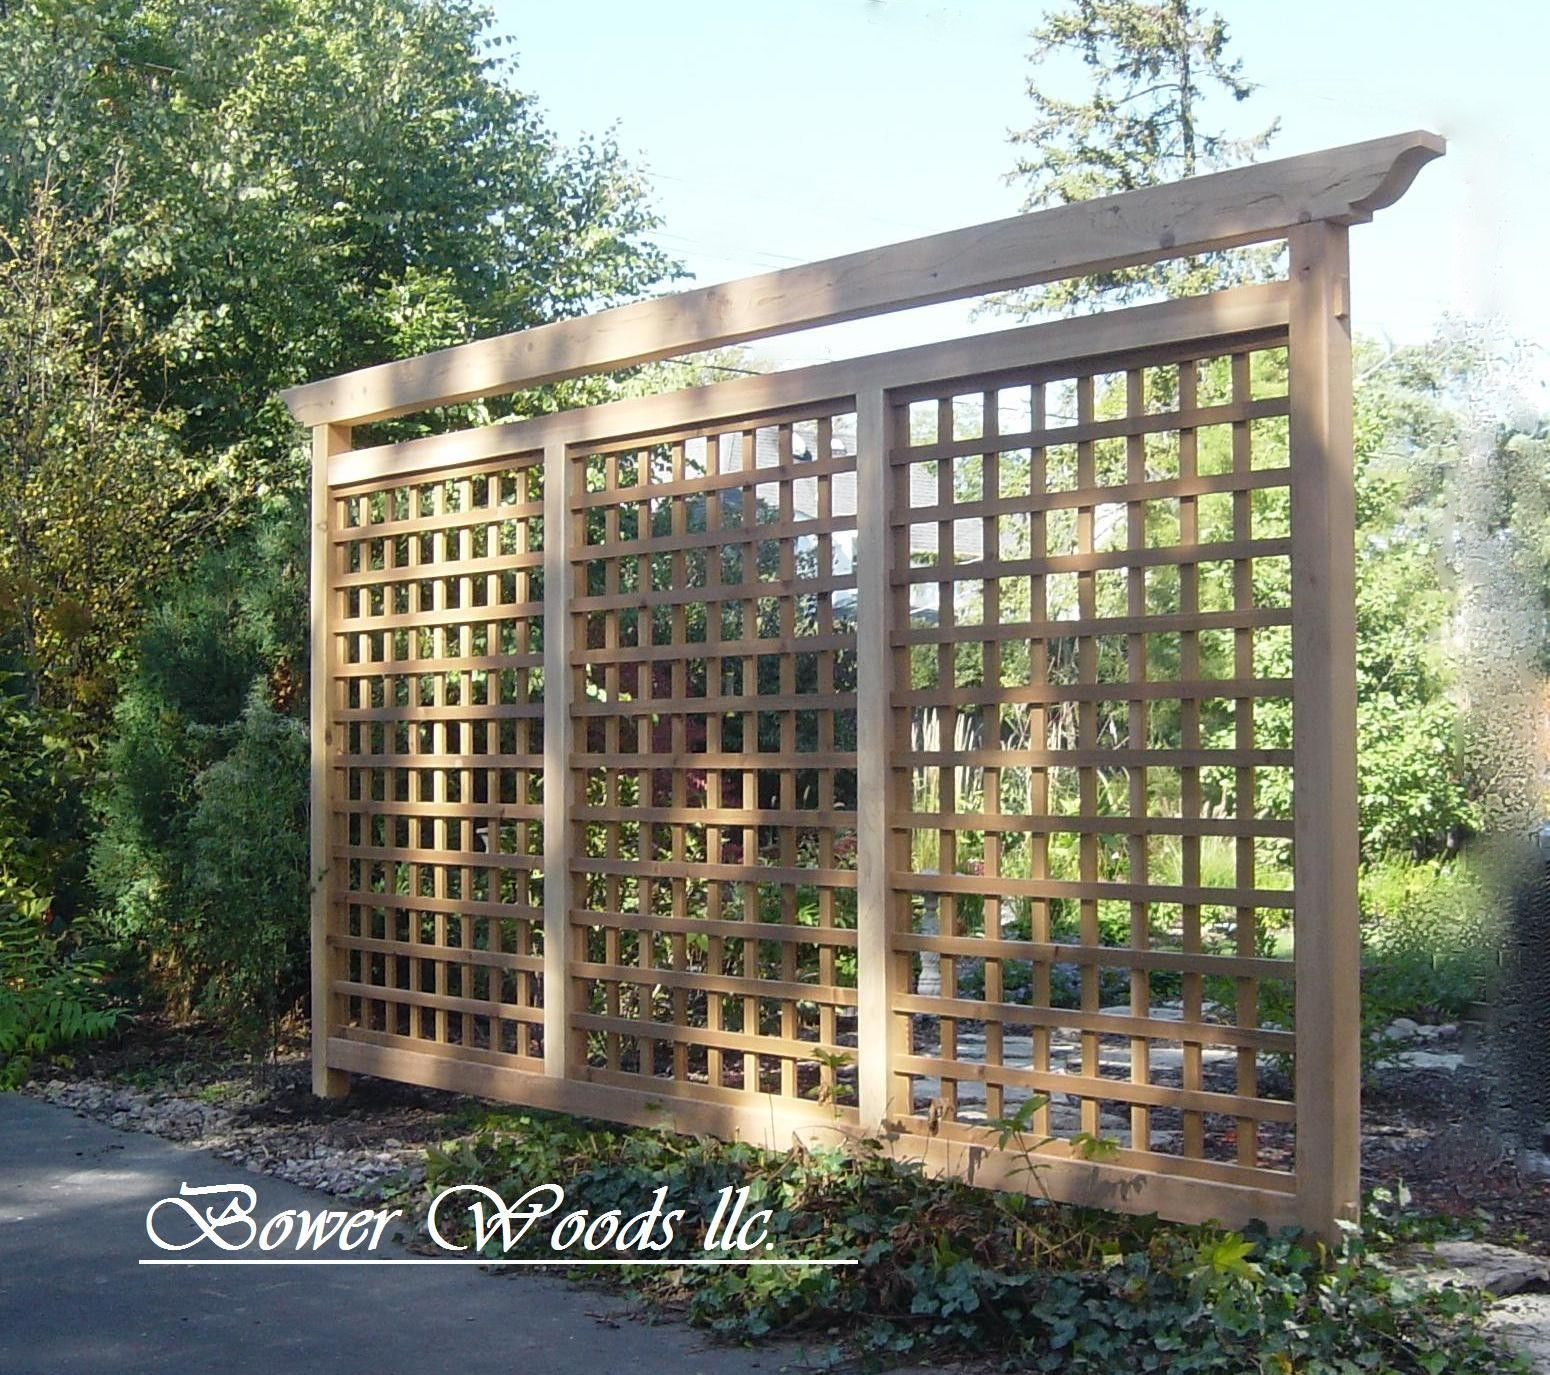 Bower woods llc custom garden structures tuscan trellis for Garden trellis ideas